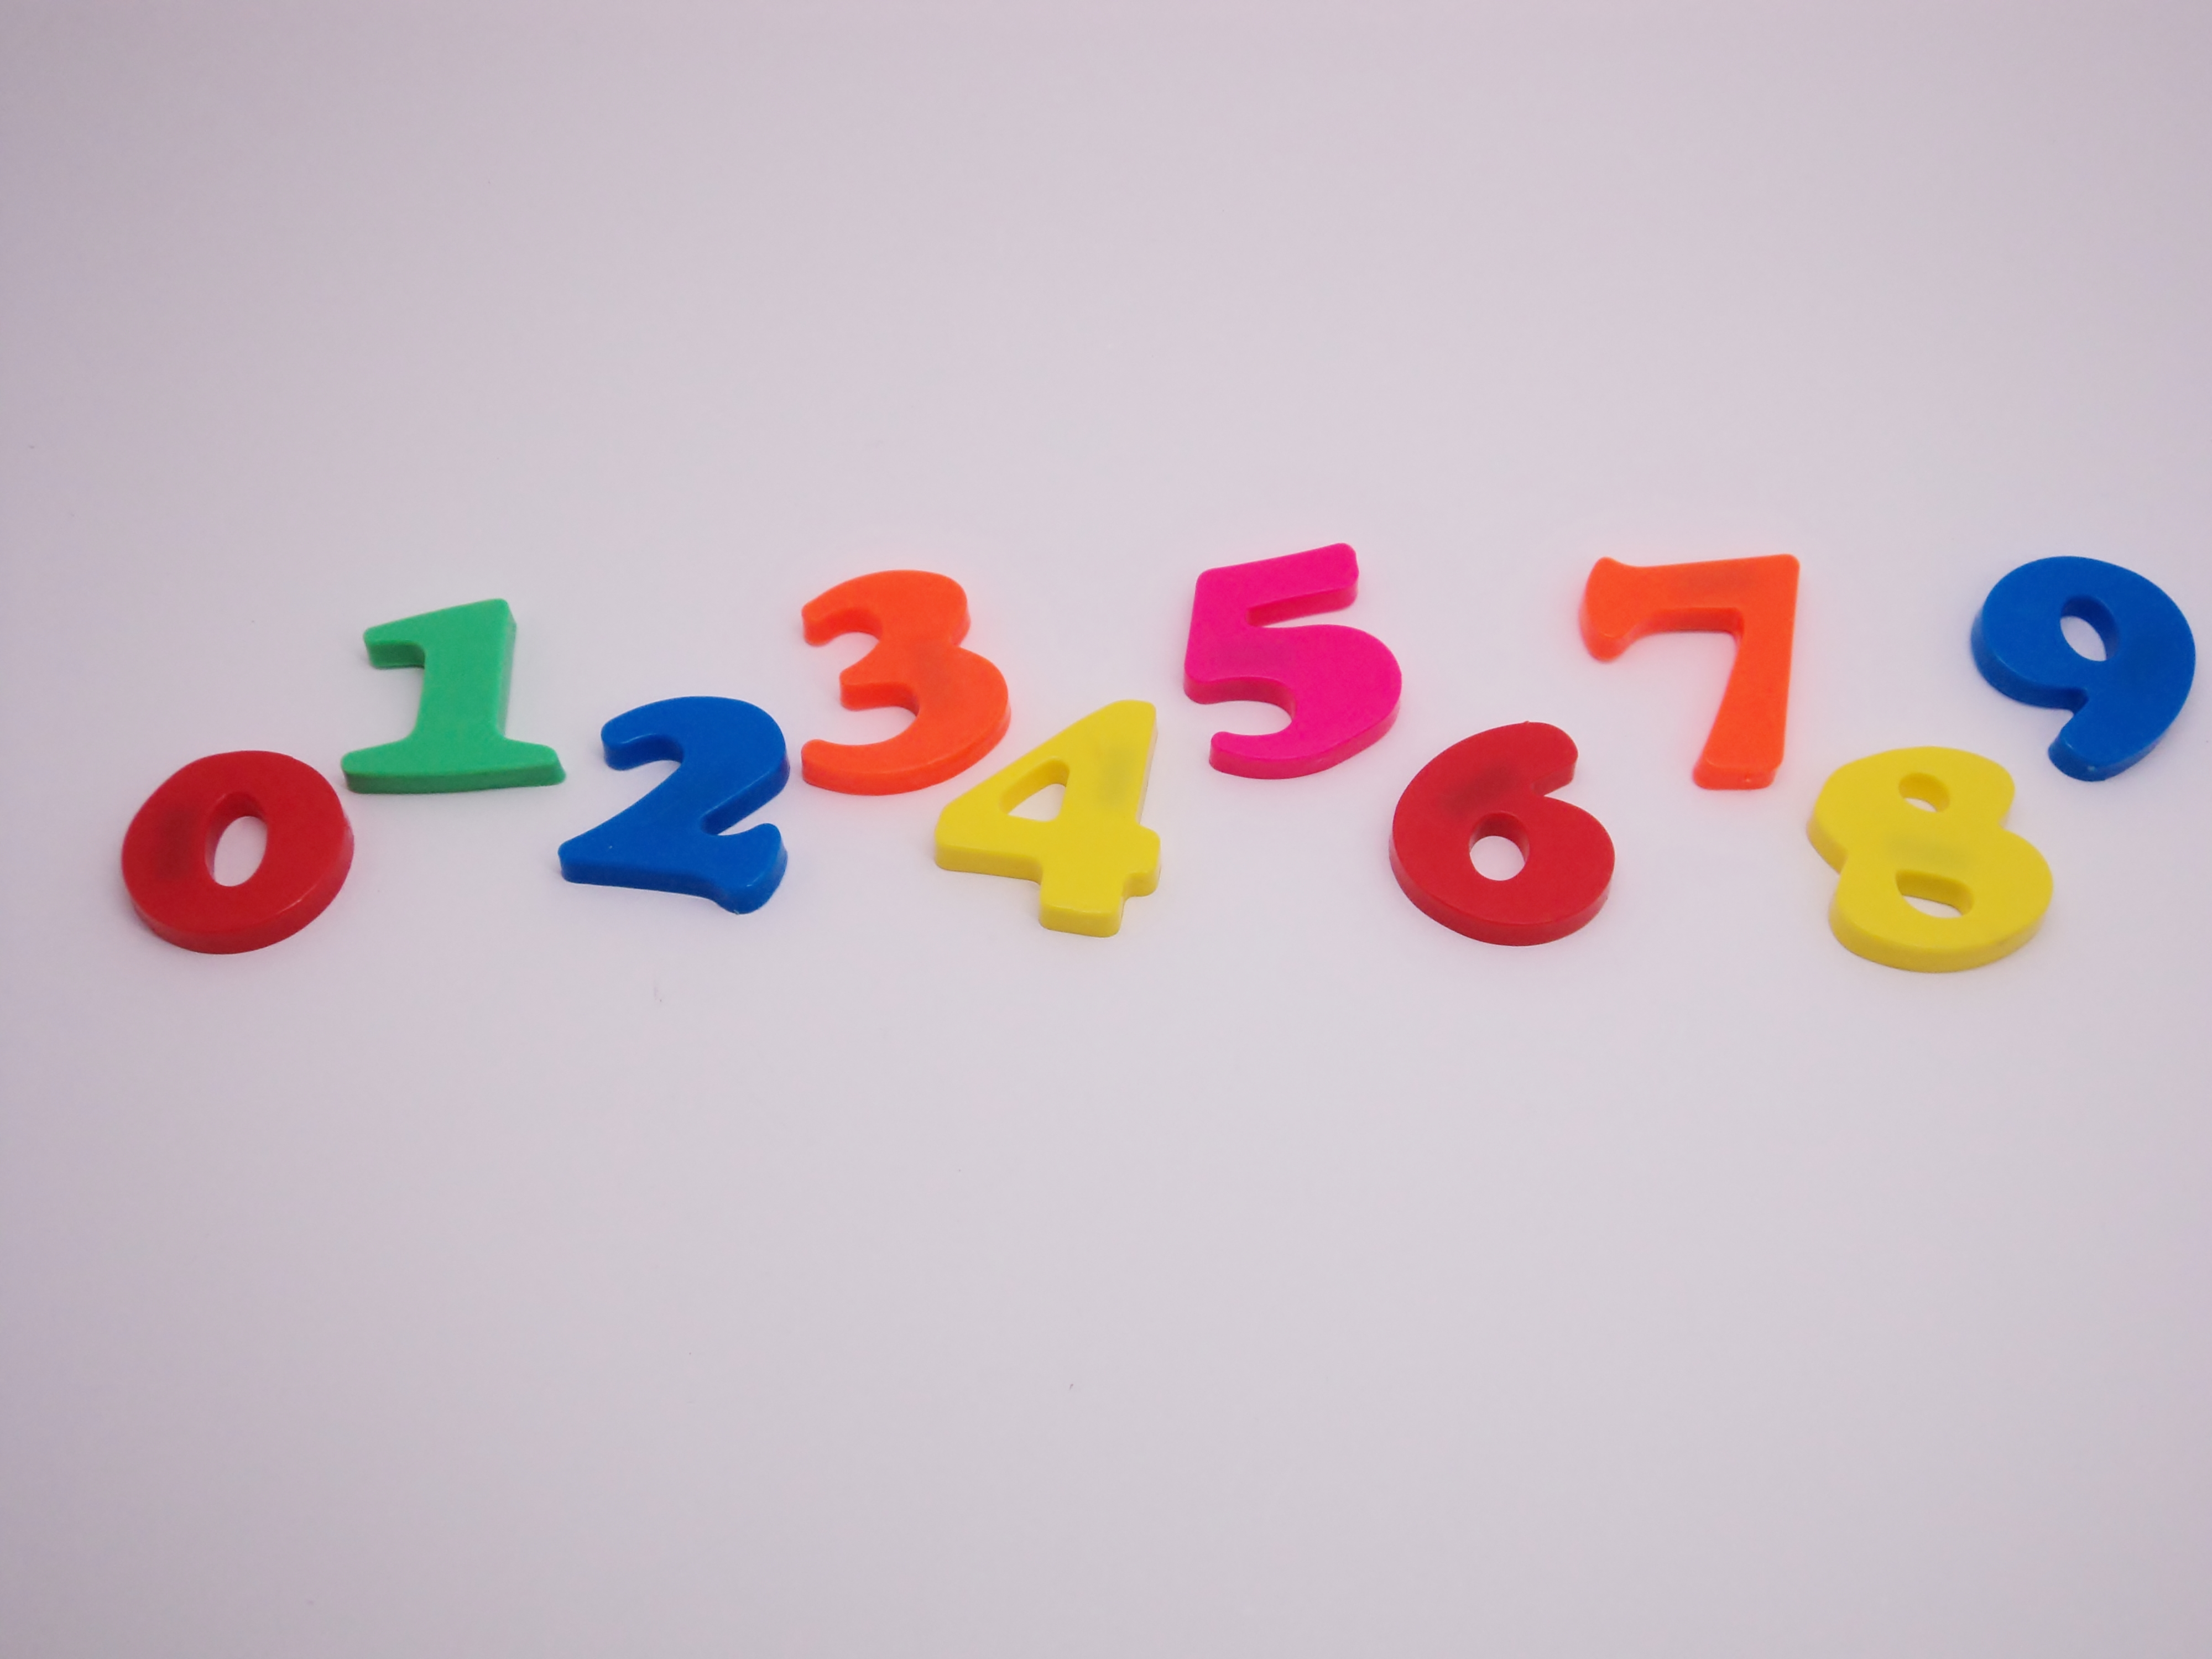 Toy Numbers, Colorful, Educational, Eight, Five, HQ Photo